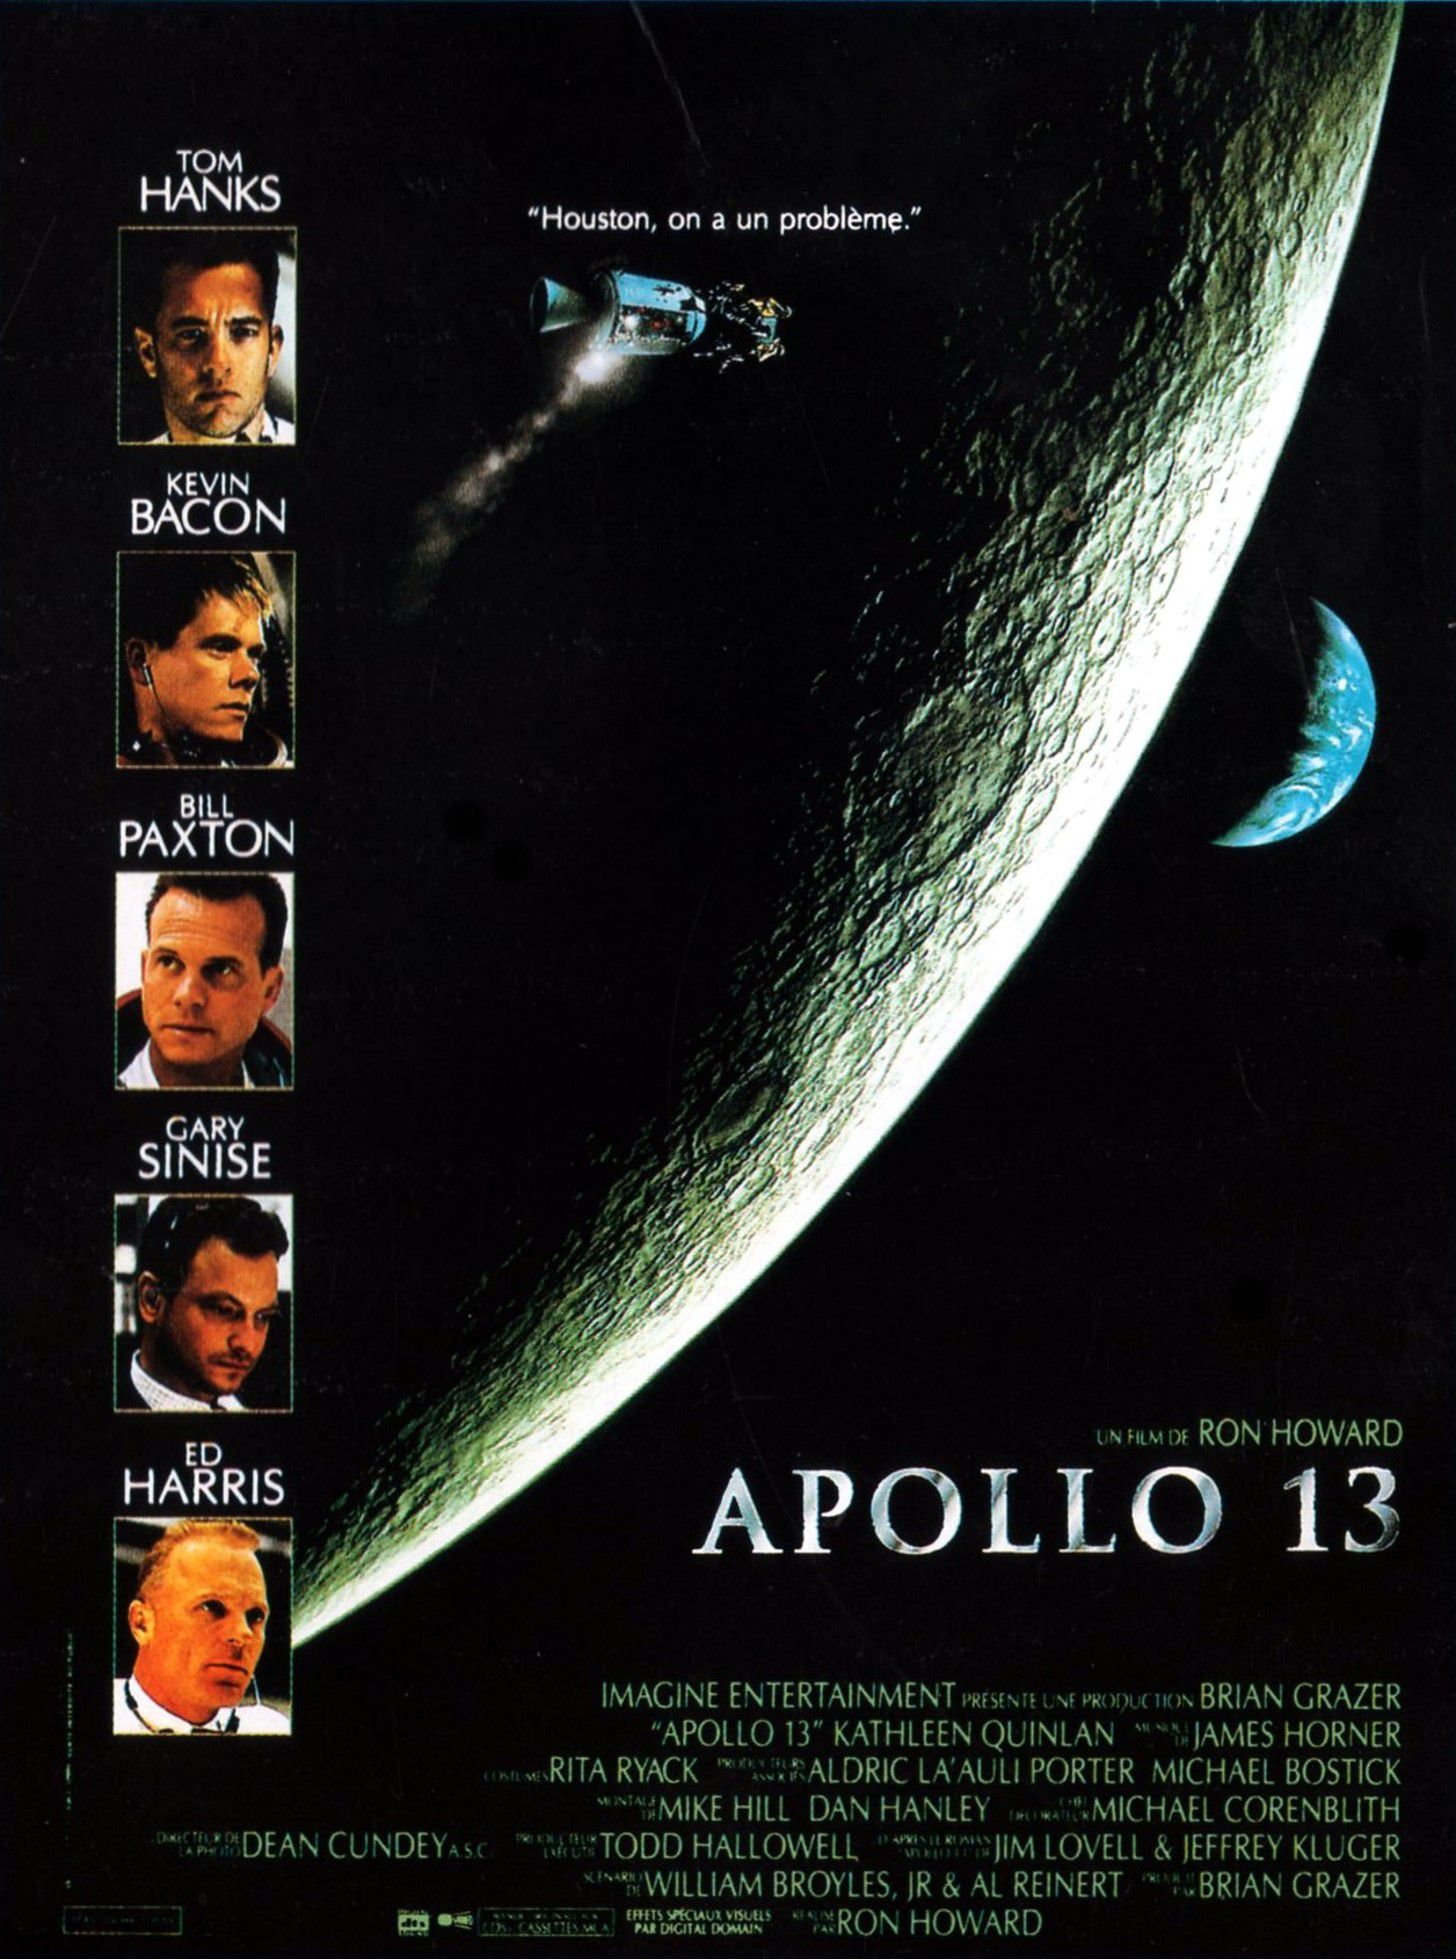 Apollo 13 (film)